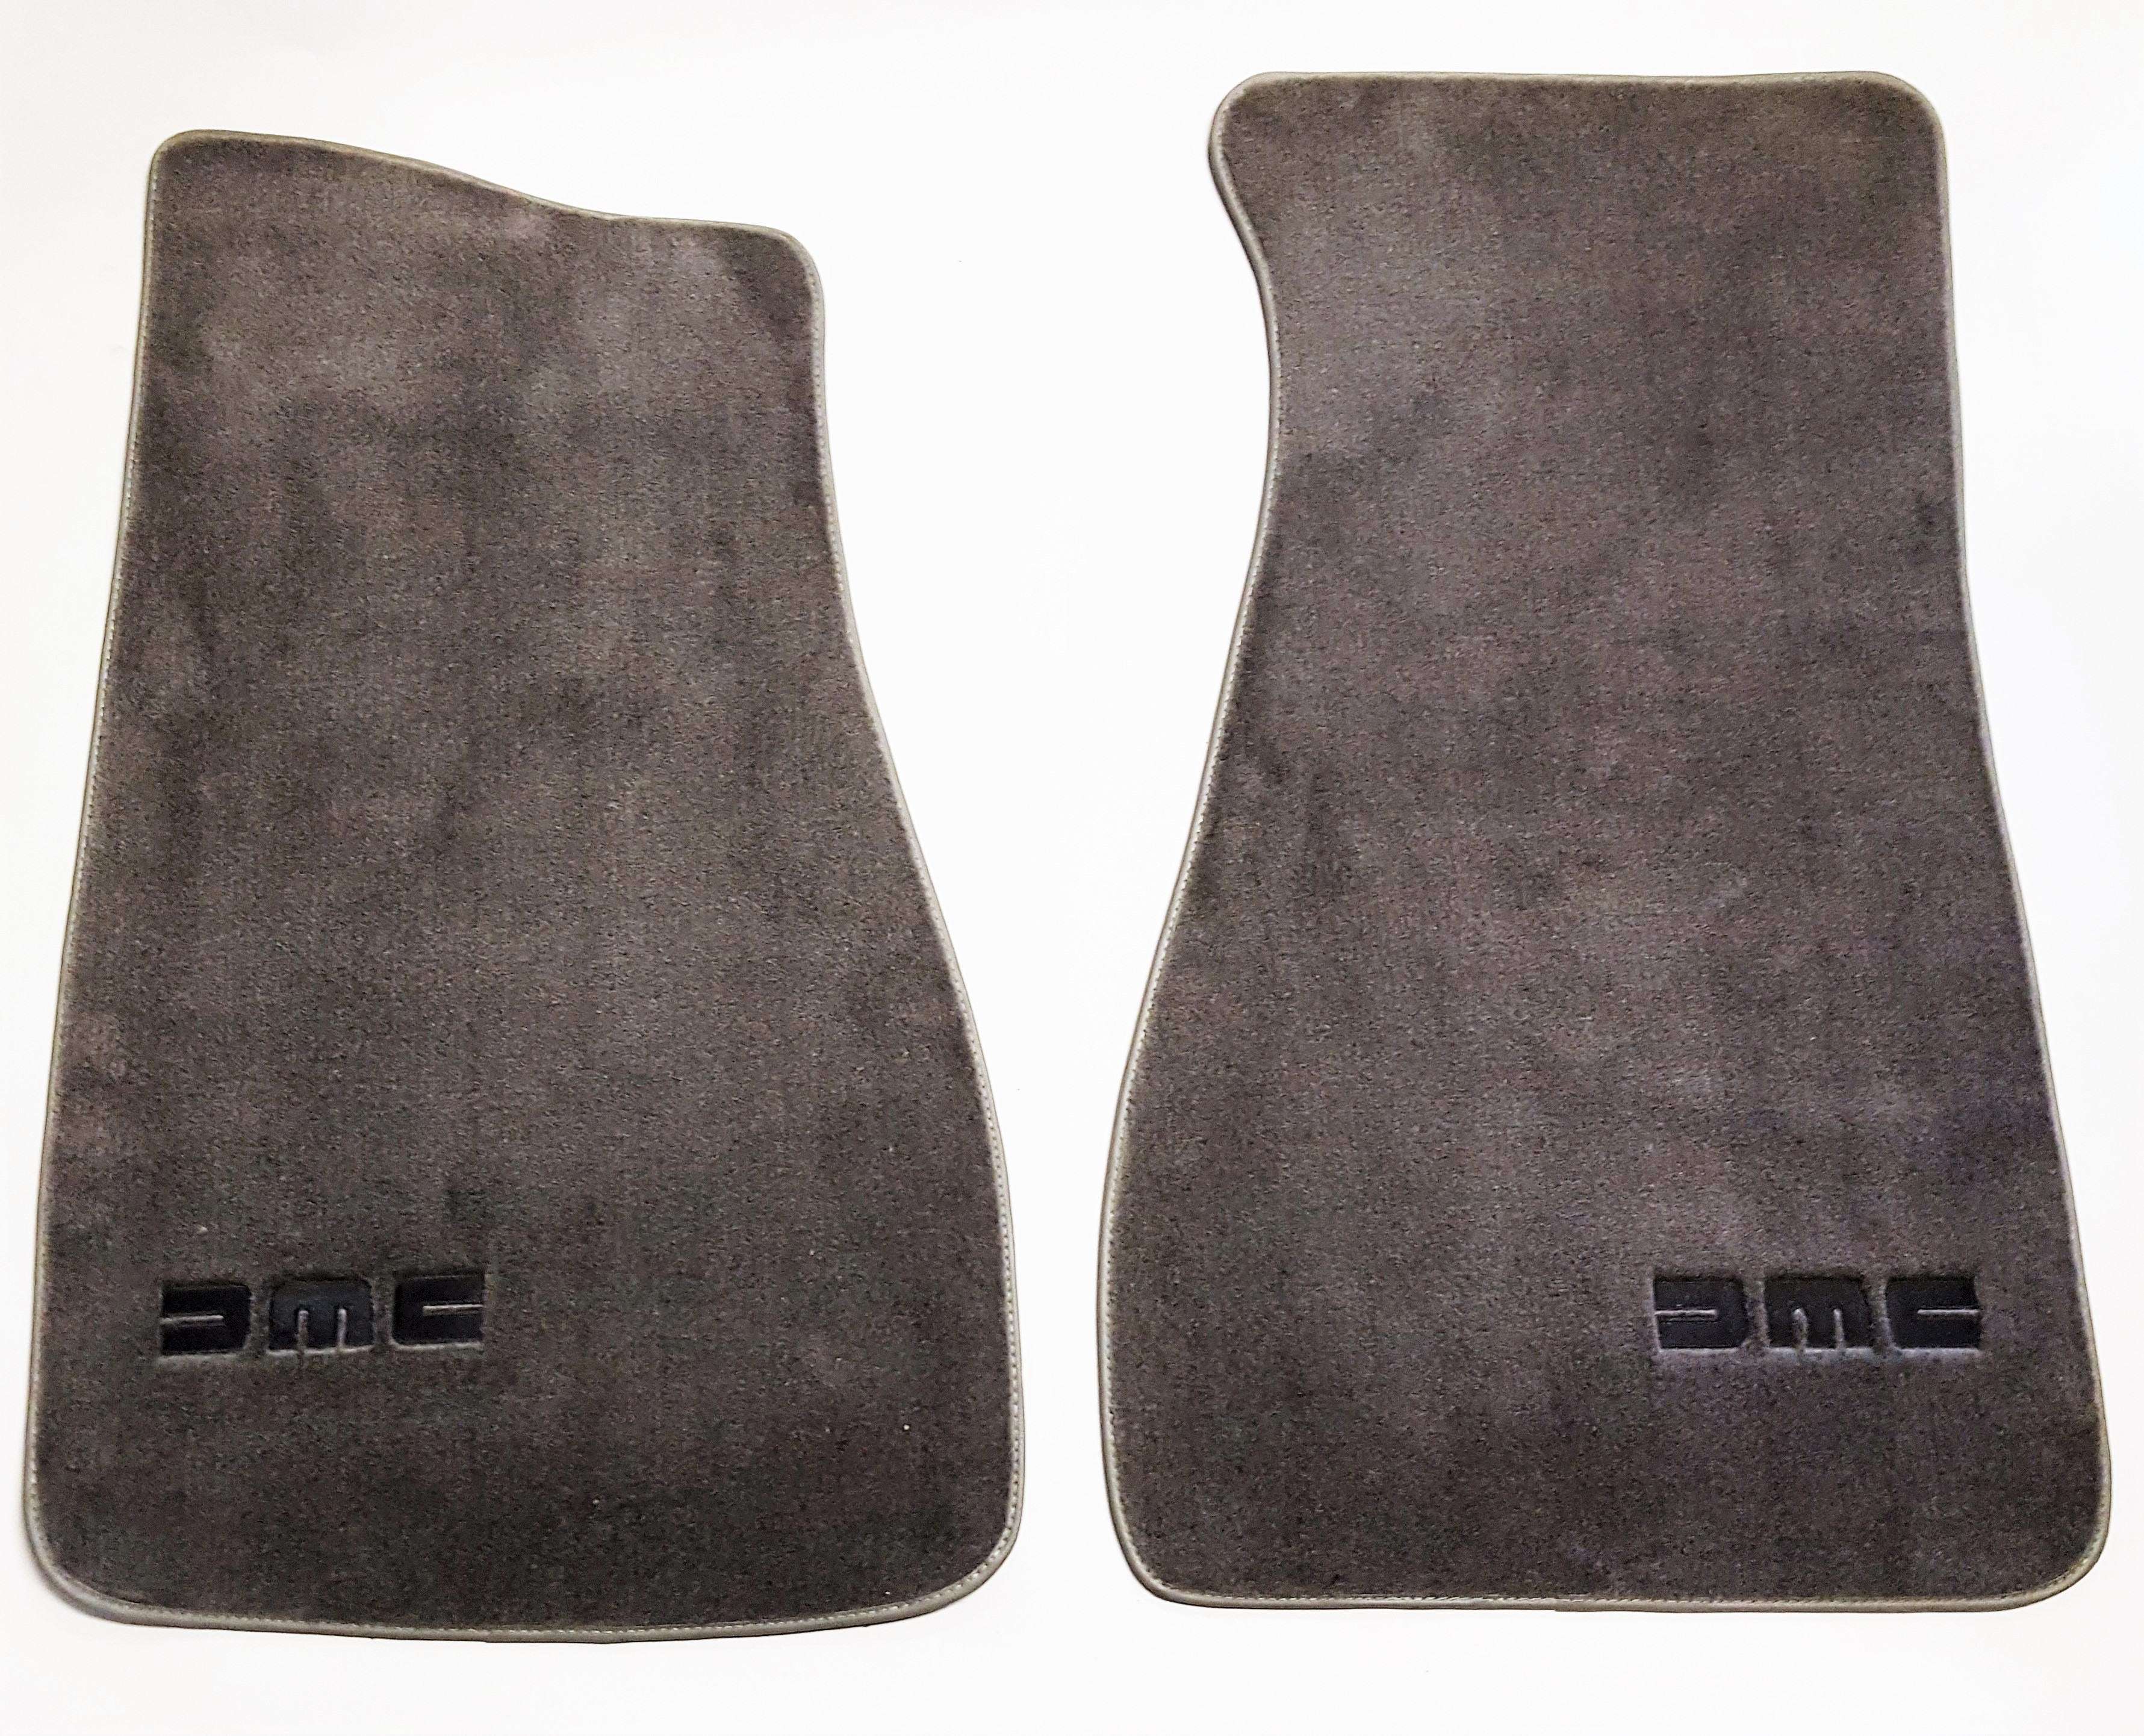 Floor mats embroidered - Dmc Embroidered Floor Mats